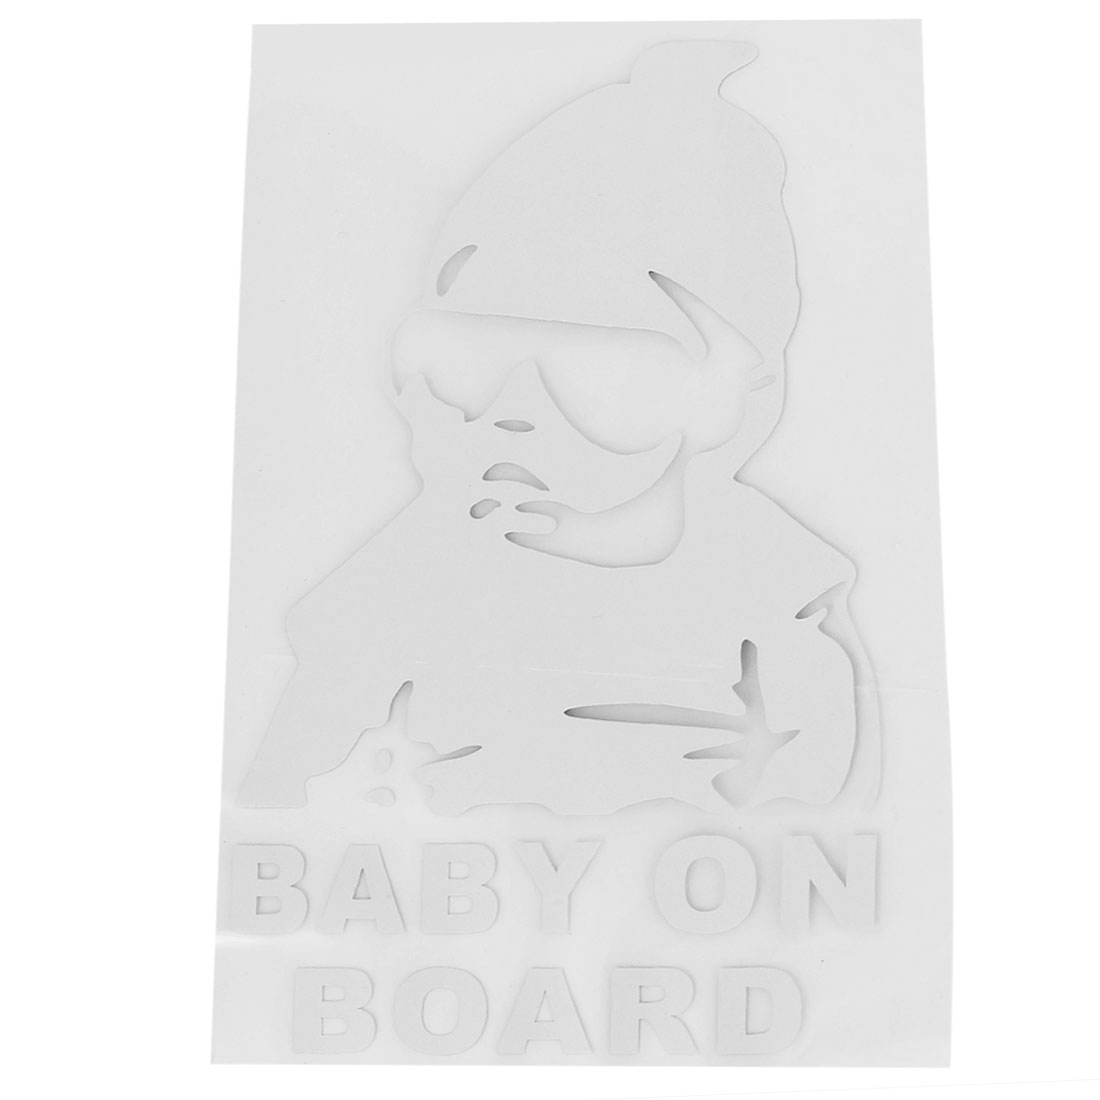 Baby on Board Car Vinyl Decal Waterproof Reflective Wall Stickers Oranment